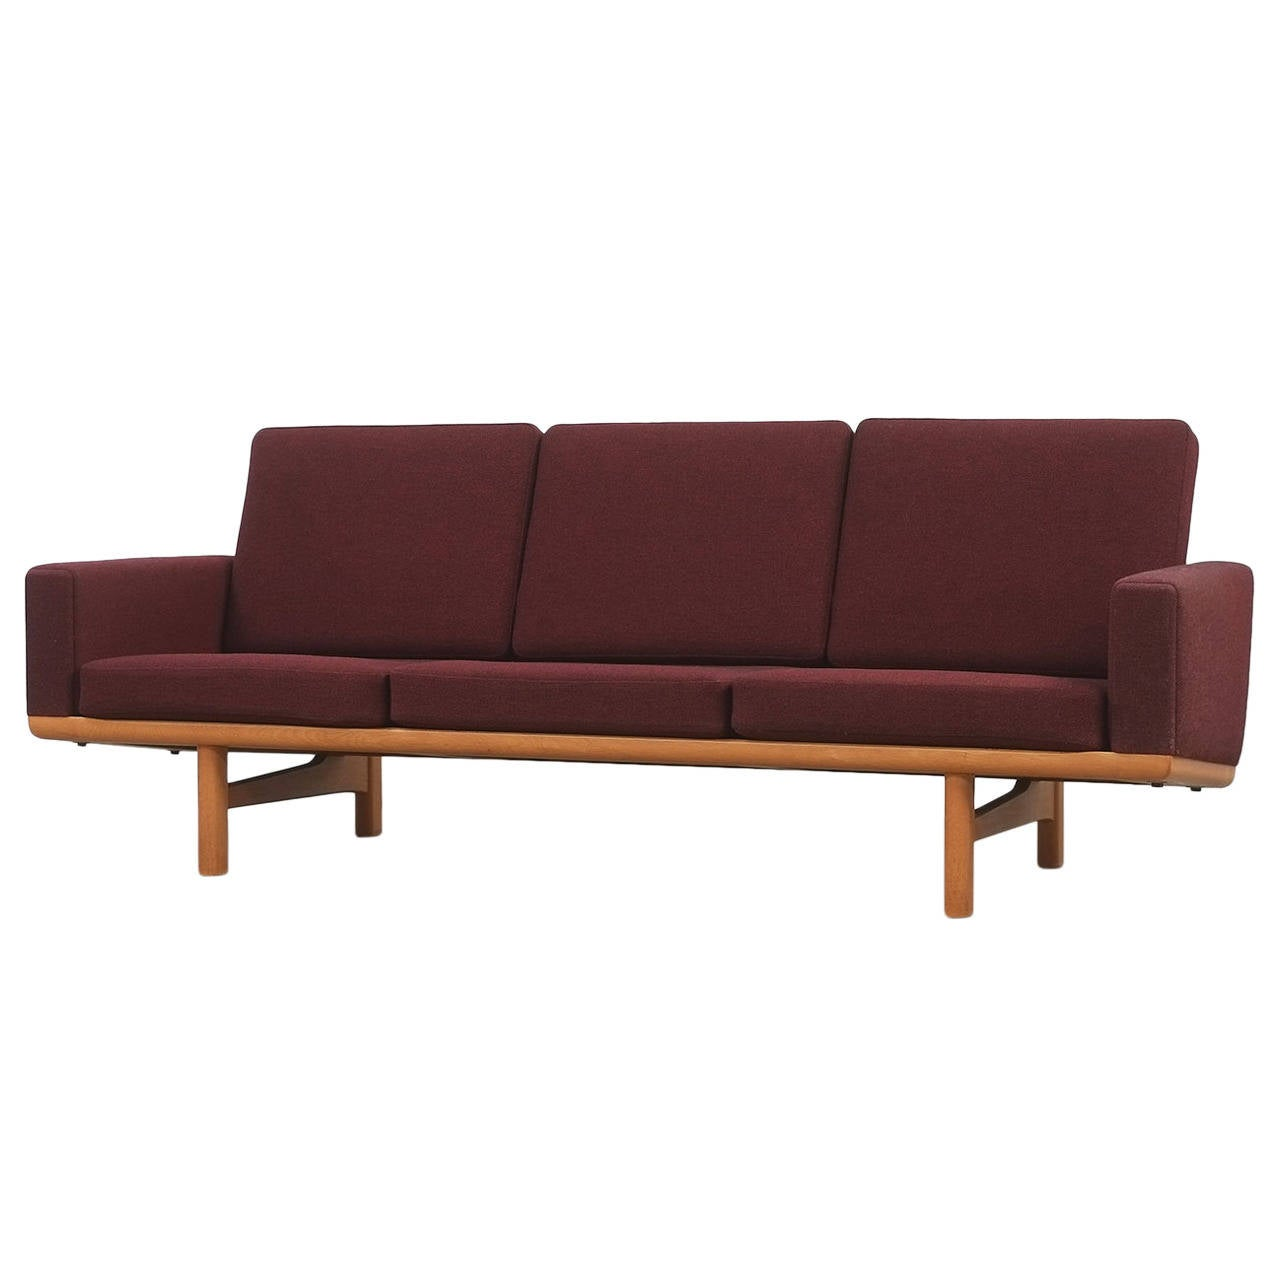 hans wegner ge236 3 sofa at 1stdibs. Black Bedroom Furniture Sets. Home Design Ideas